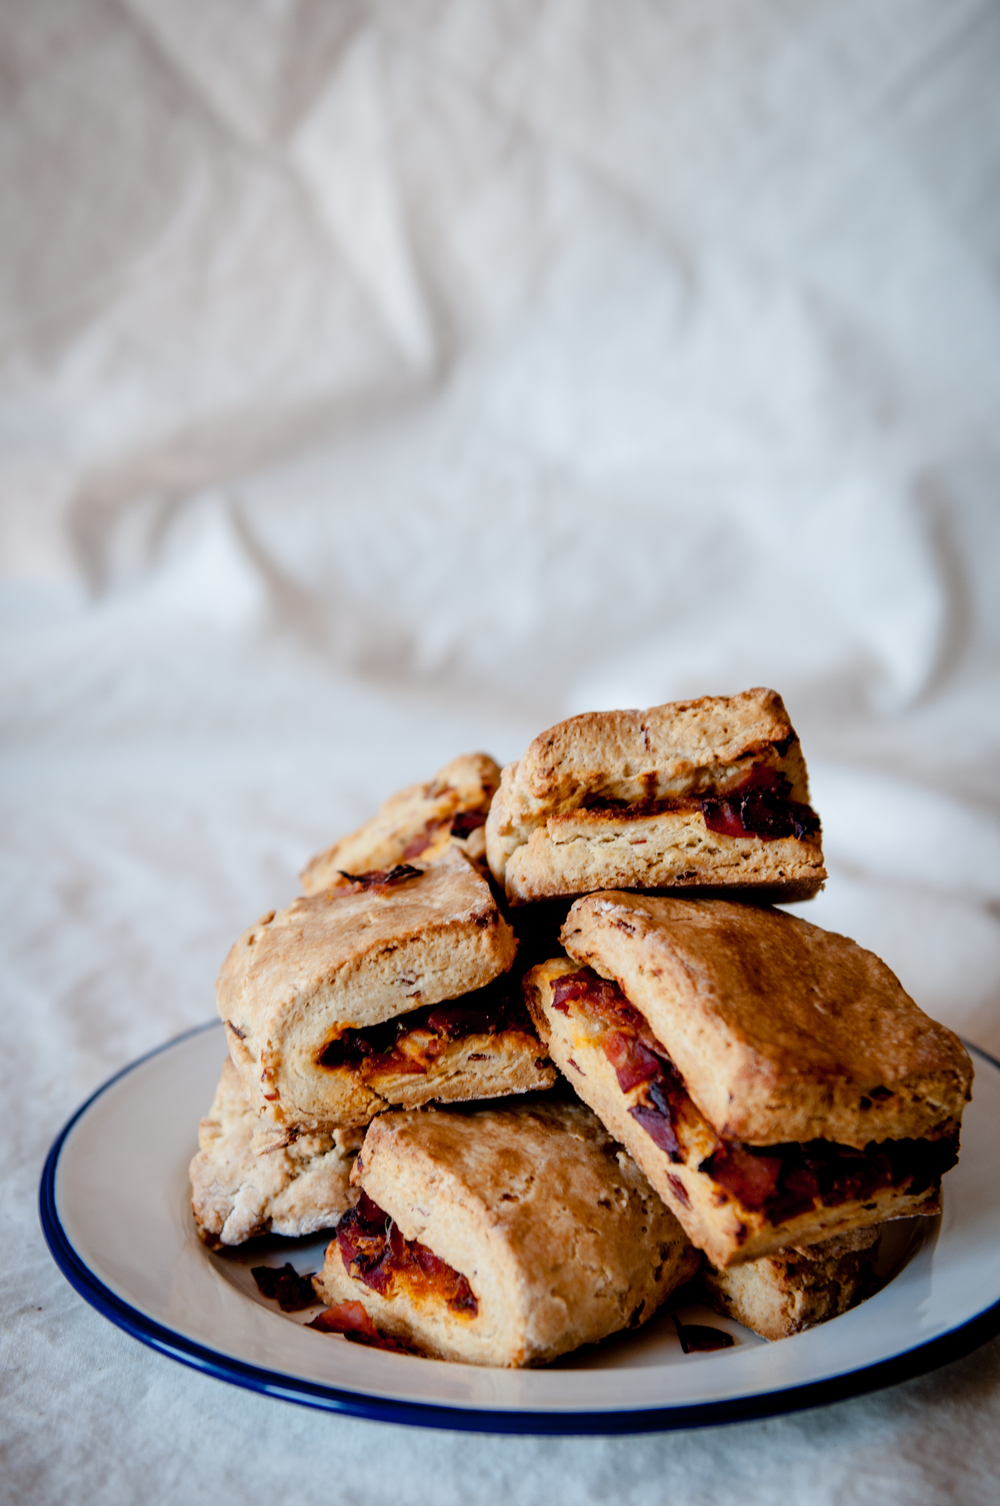 STUFFED SPECK SCONES